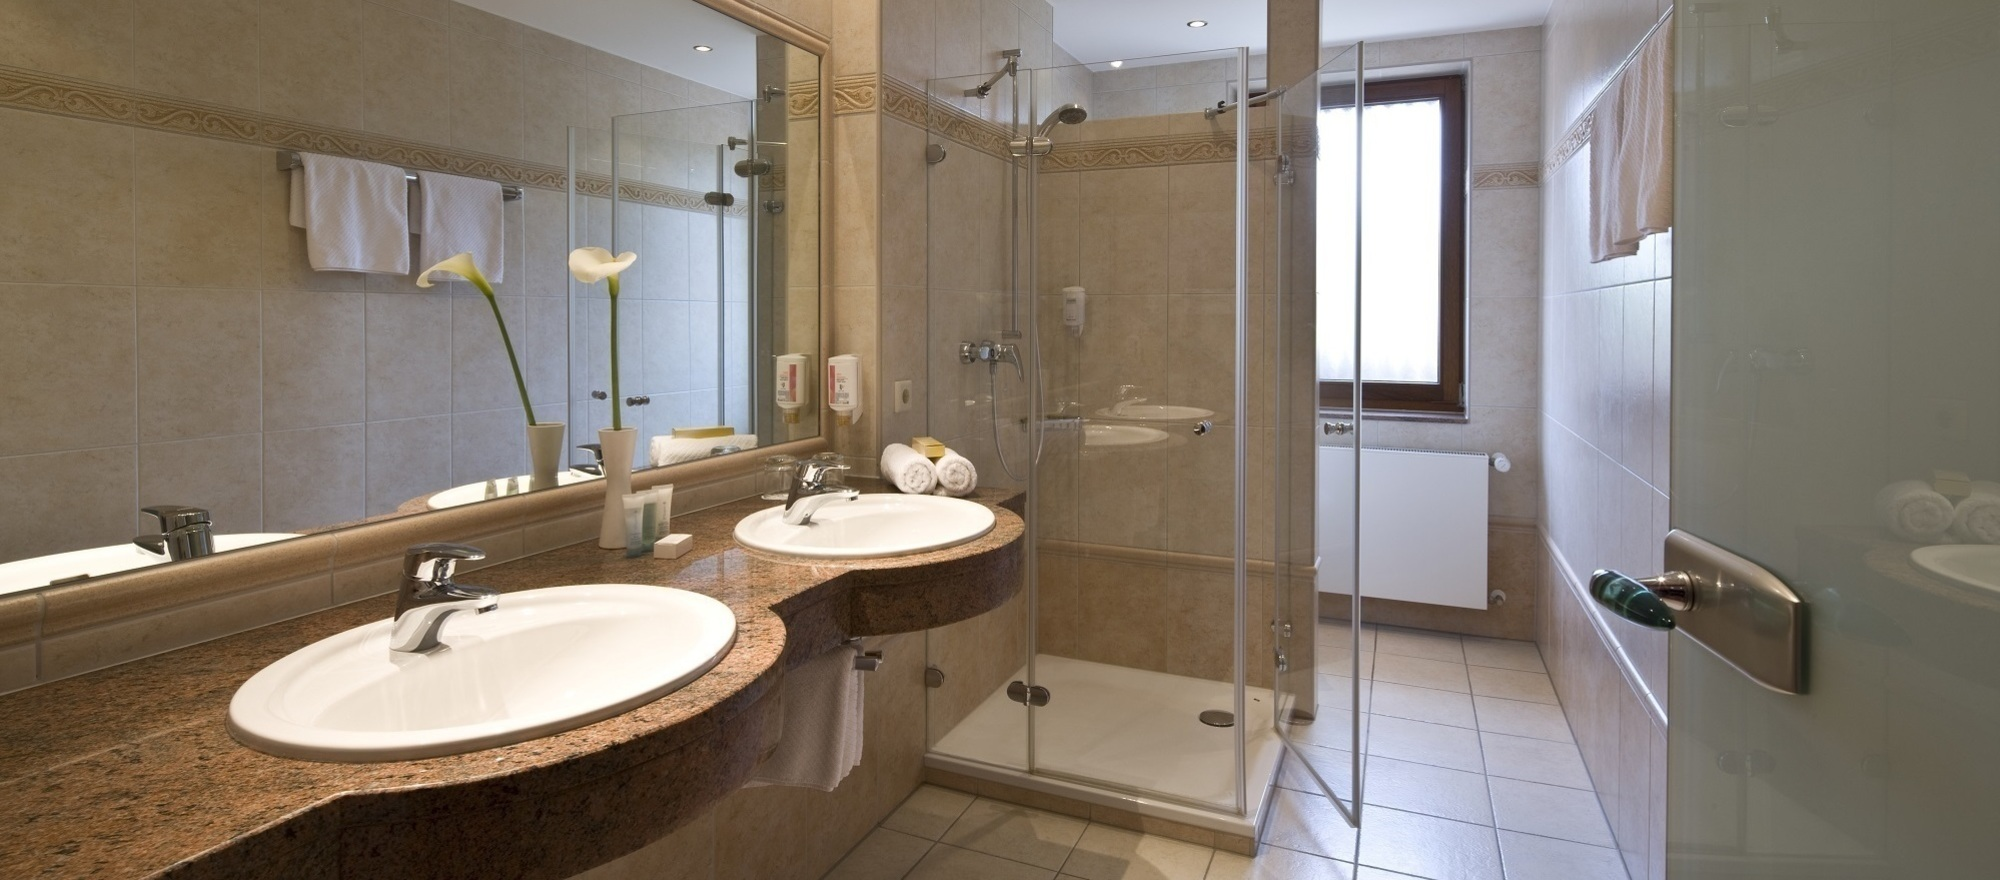 Extra spacious noble bath room at the 3-star hotel Ringhotel Germanenhof in Steinheim-Sandebeck